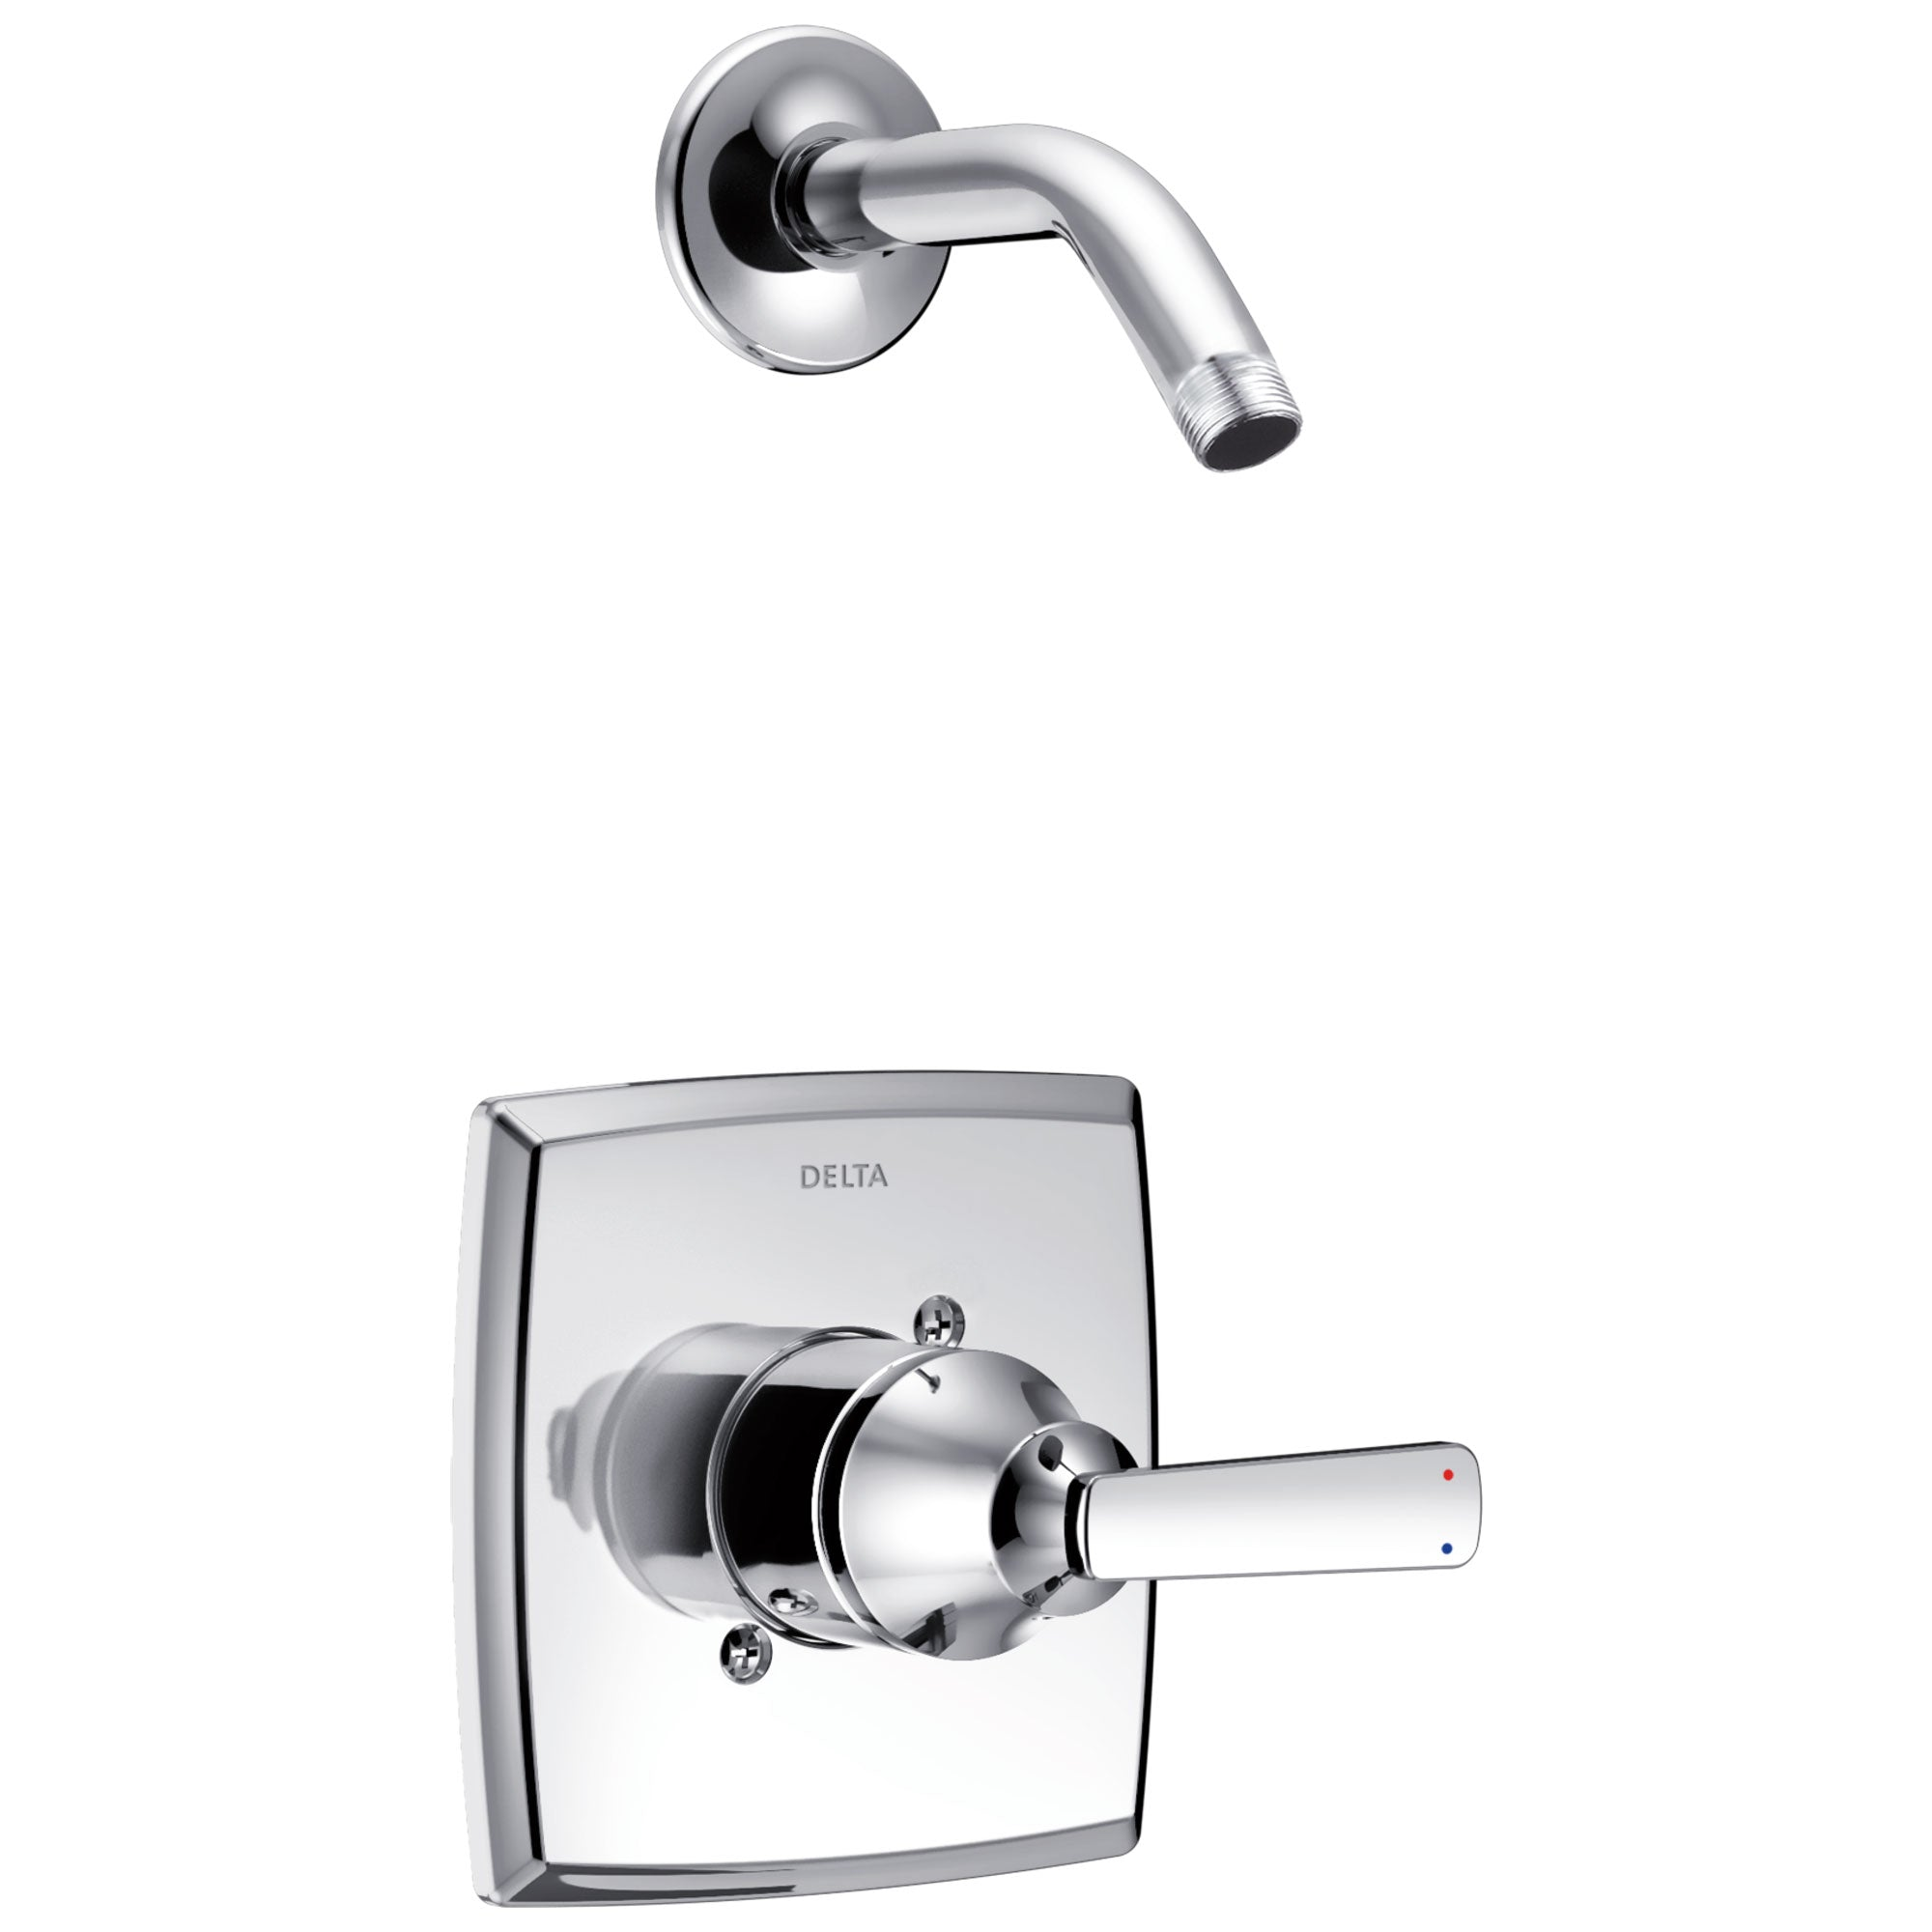 Delta Ashlyn Collection Chrome Monitor 14 Modern Single Lever Shower only Faucet Trim Kit - Less Showerhead Includes Rough-in Valve without Stops D2447V